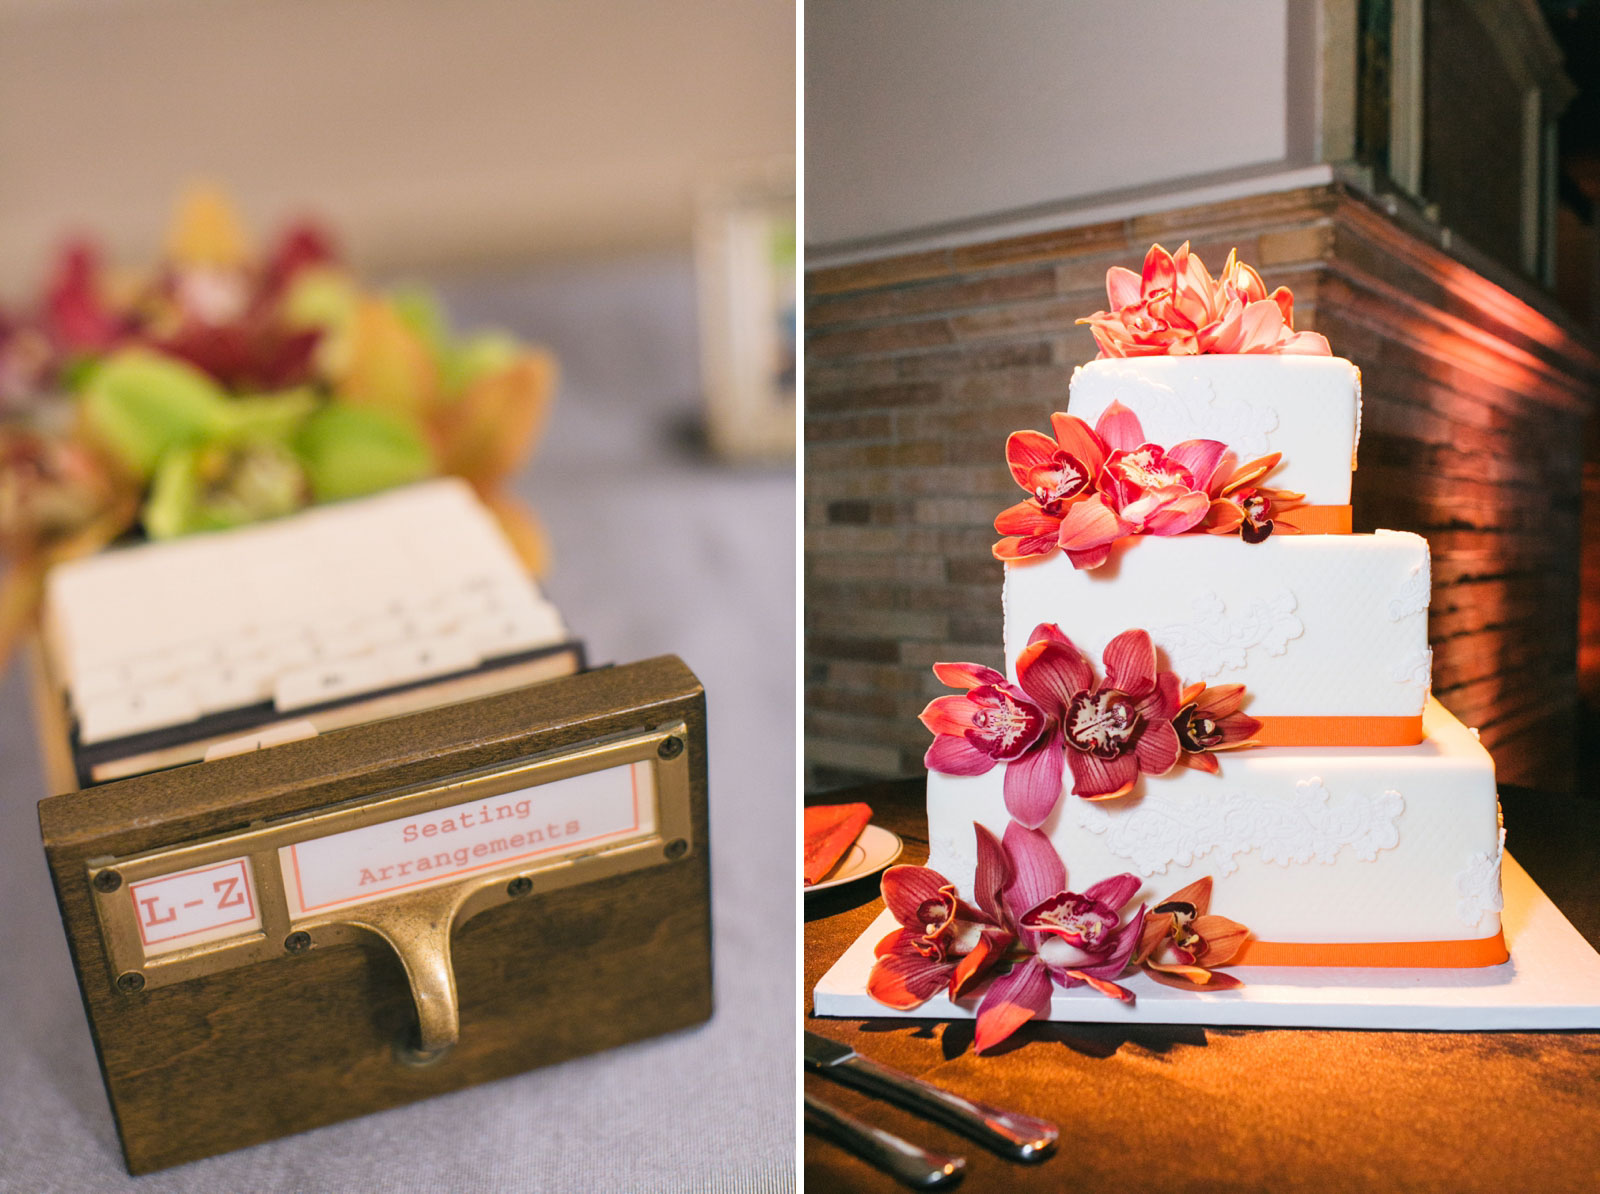 Library-inspired card catalog place cards and vibrant wedding cake adorned with purple orchids